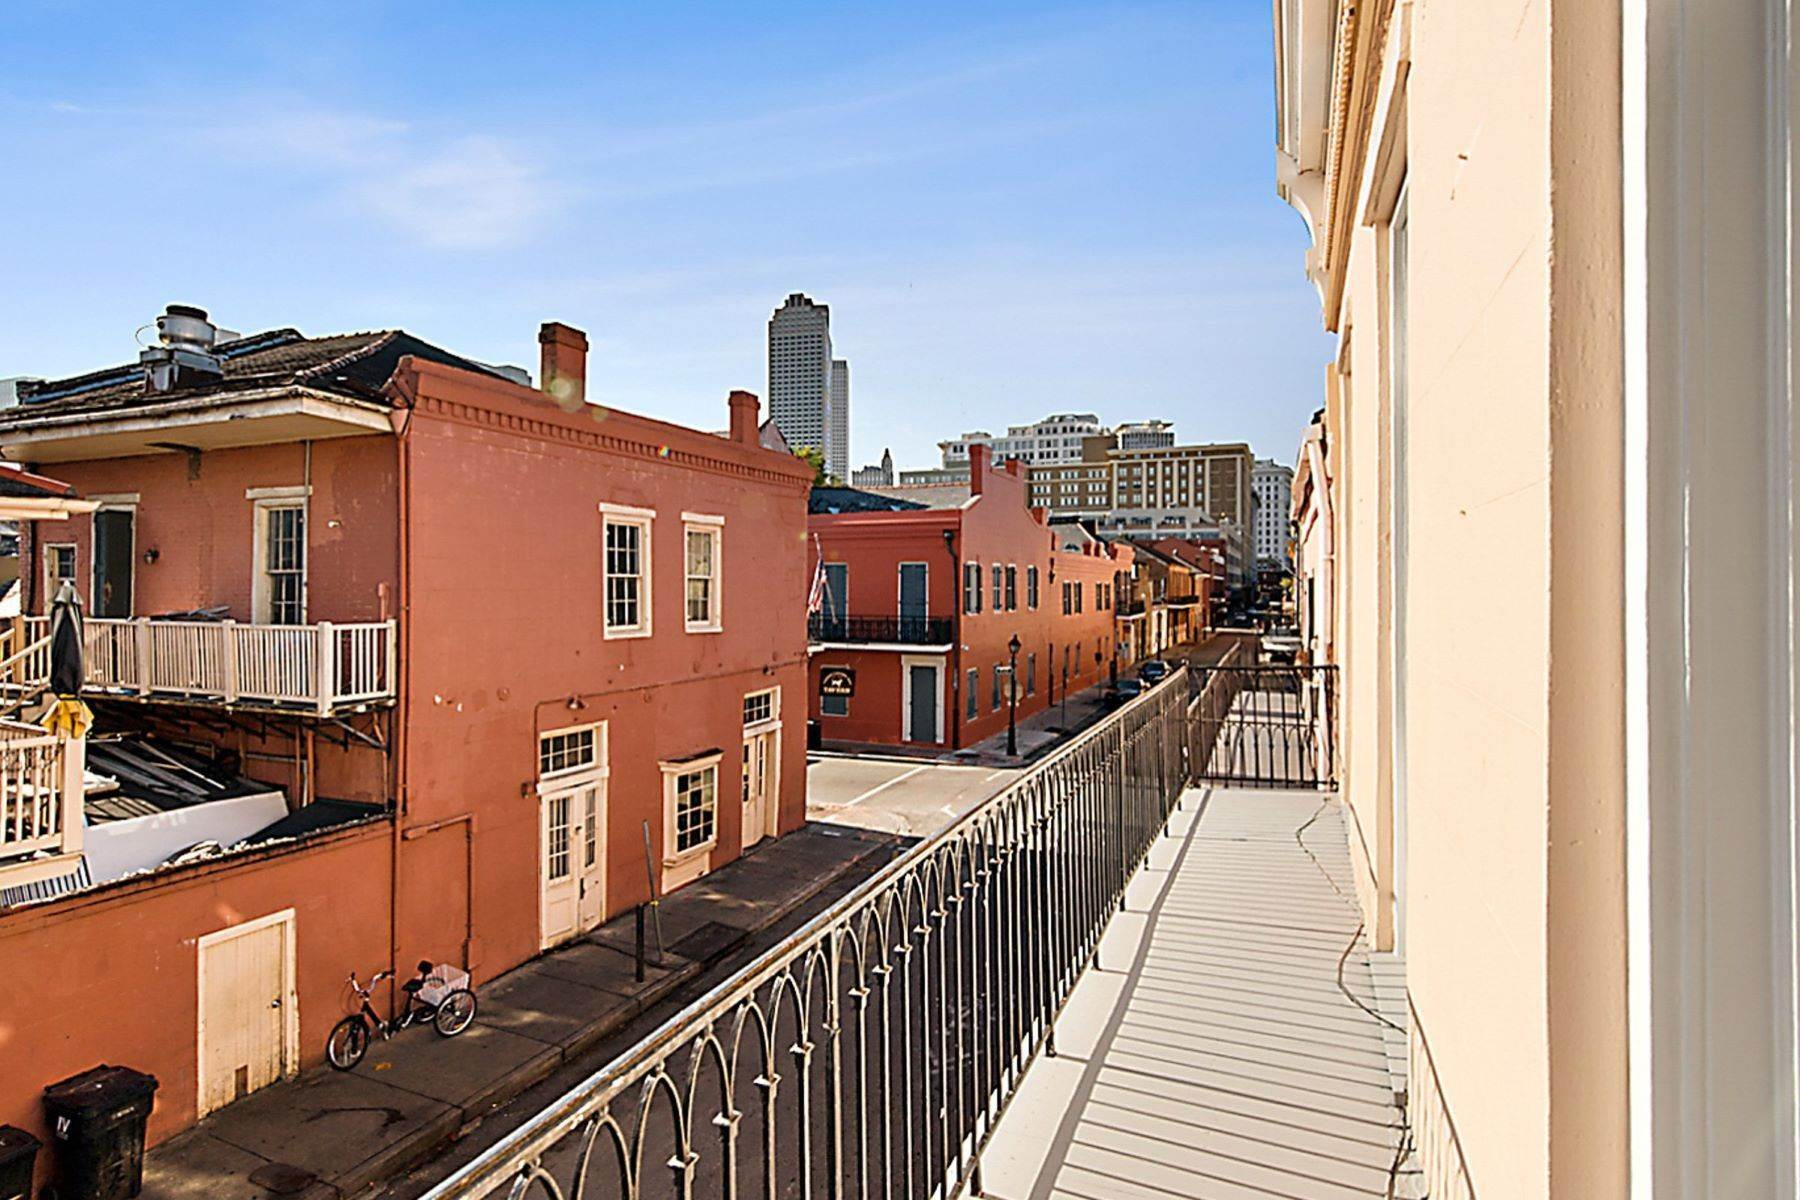 17. Condominiums for Sale at 407 Burgundy Street, Unit 2 407 Burgundy St, Unit 2 New Orleans, Louisiana 70112 United States